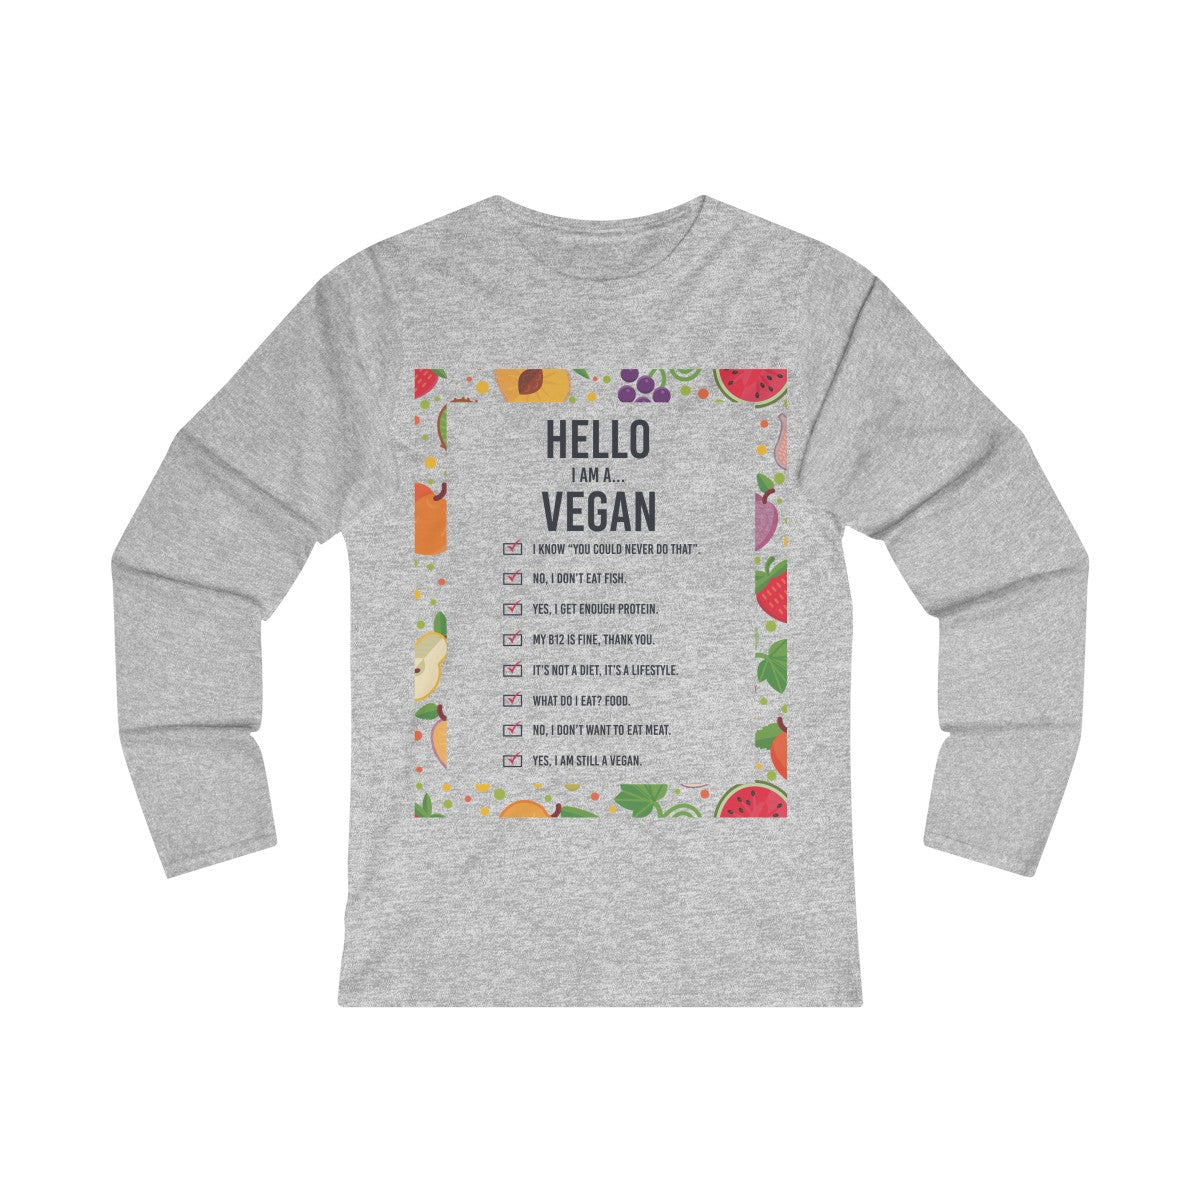 Hello, I am a vegan v3 - Long Sleeve T-Shirt - My Vegan Menu